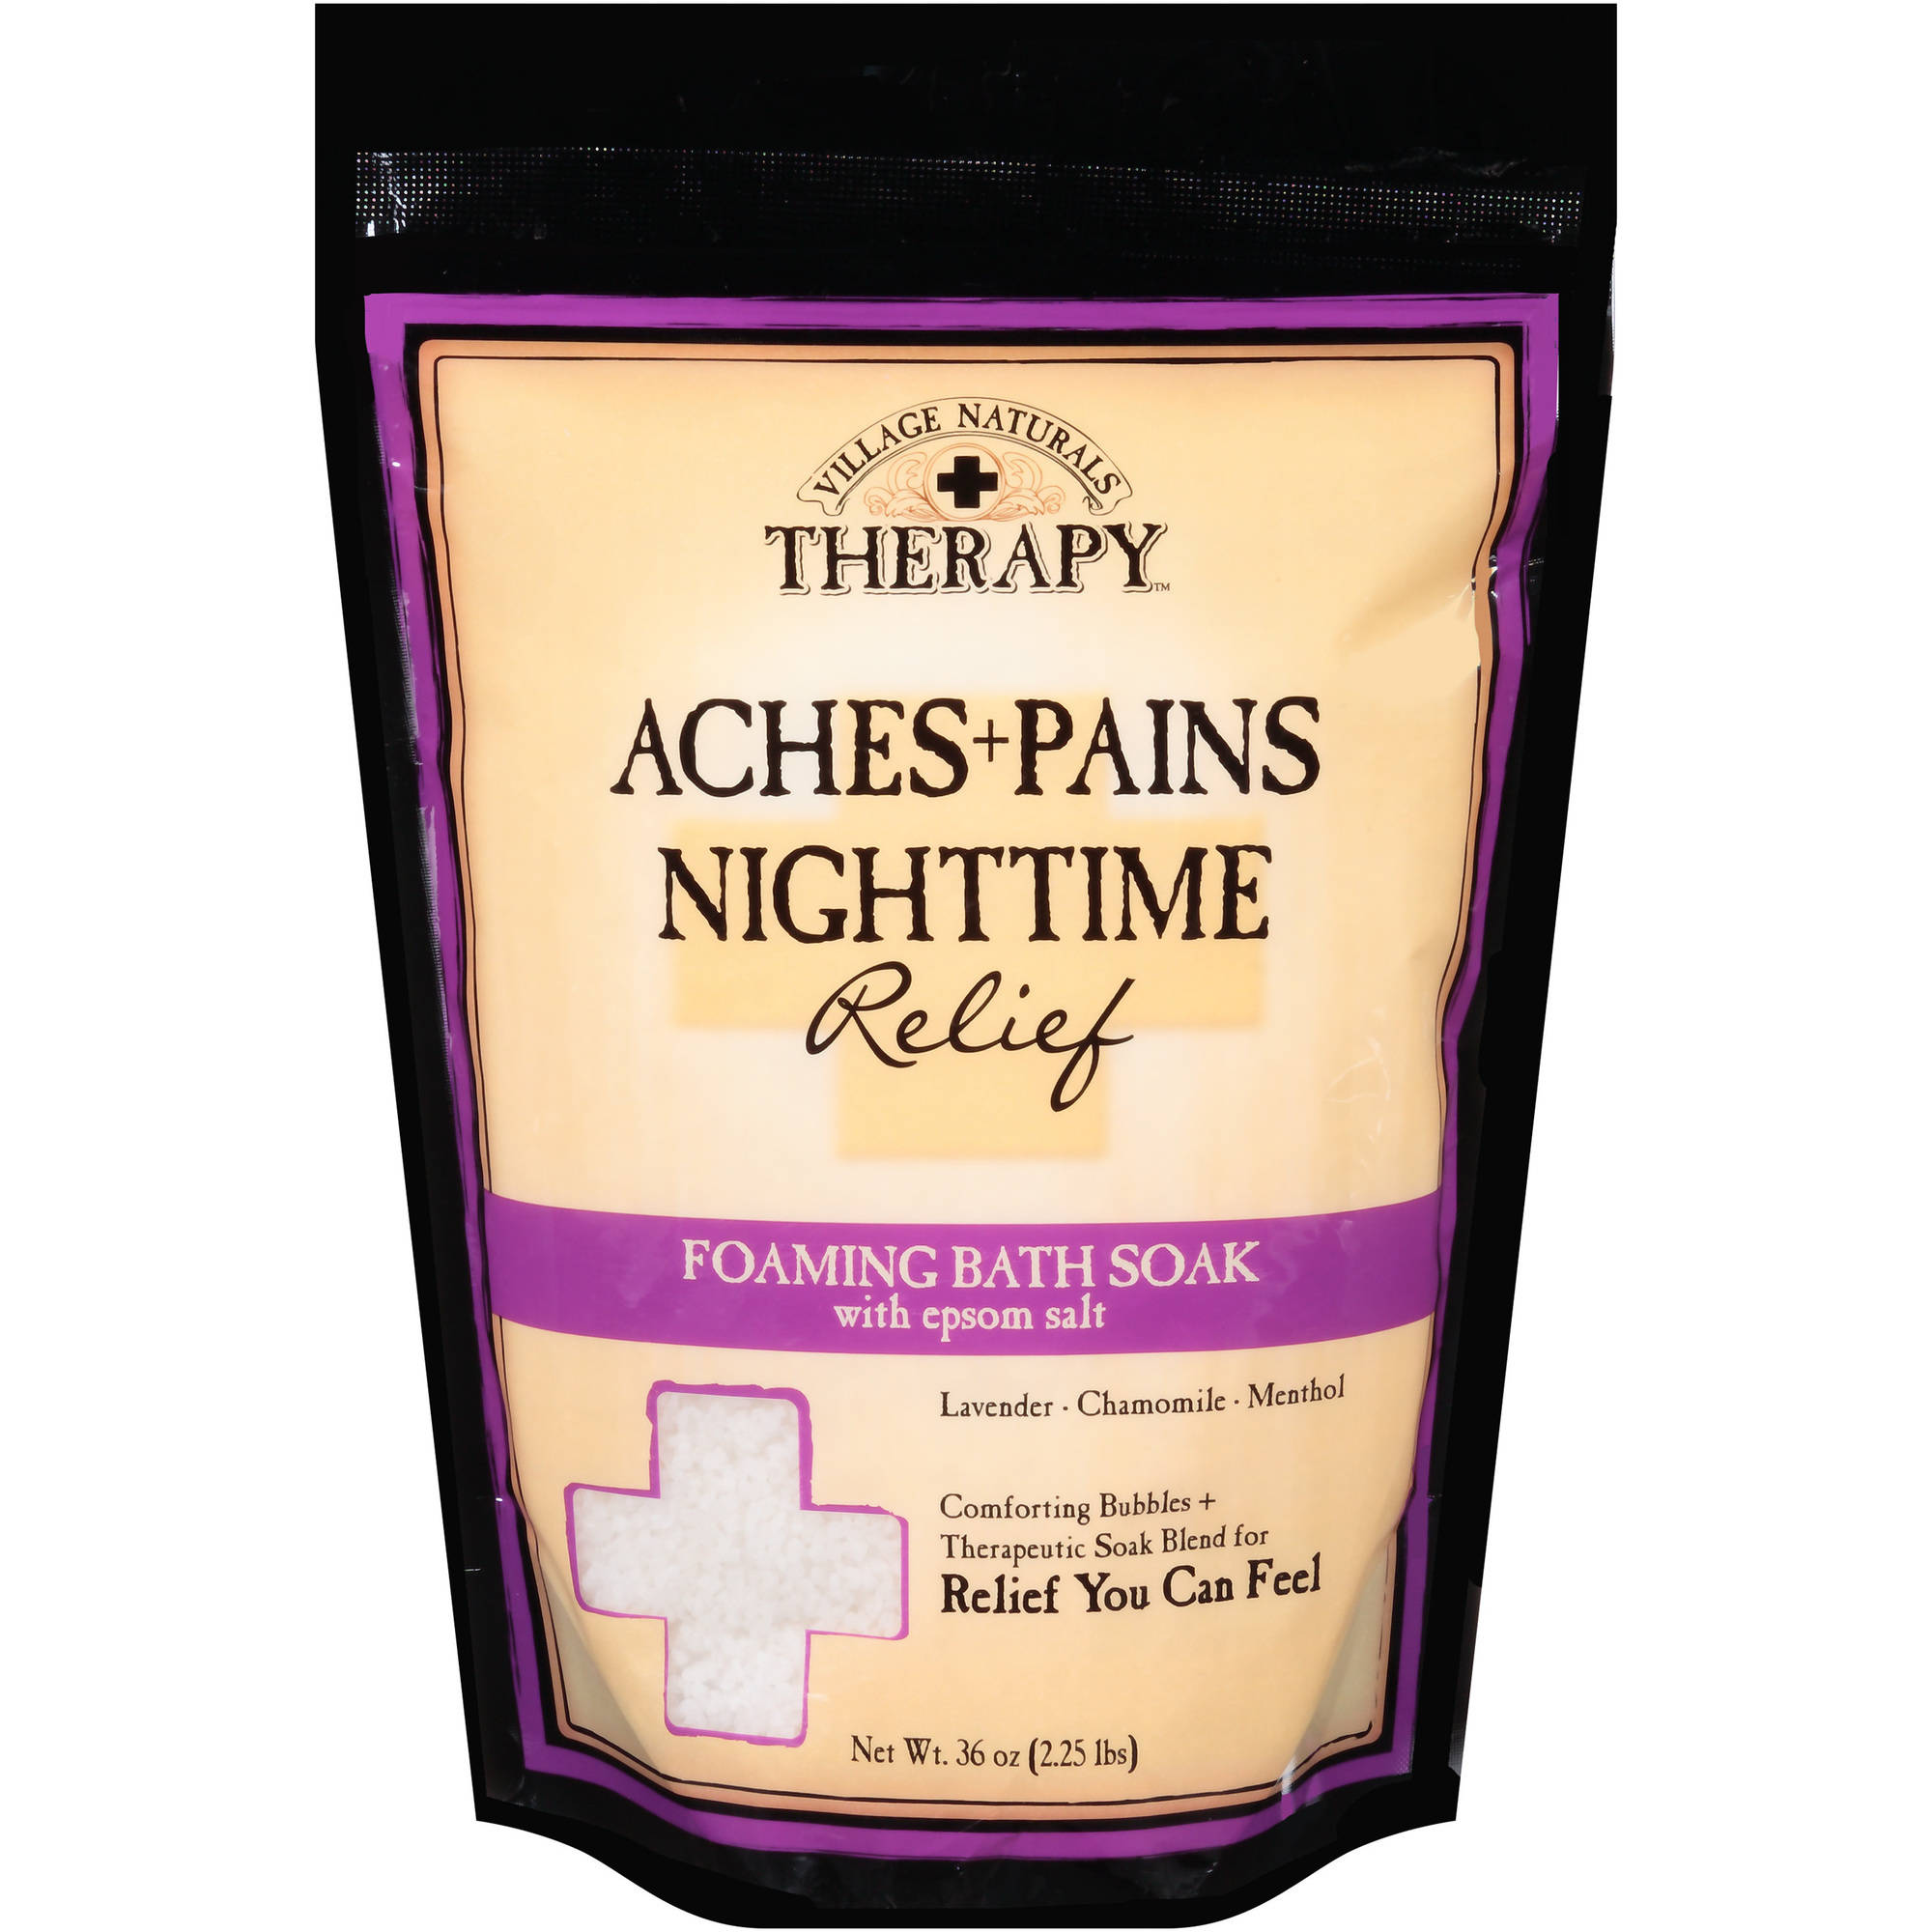 Village Naturals Therapy Aches+Pains Nighttime Relief Foaming Bath Soak with Epsom Salt, 36 oz